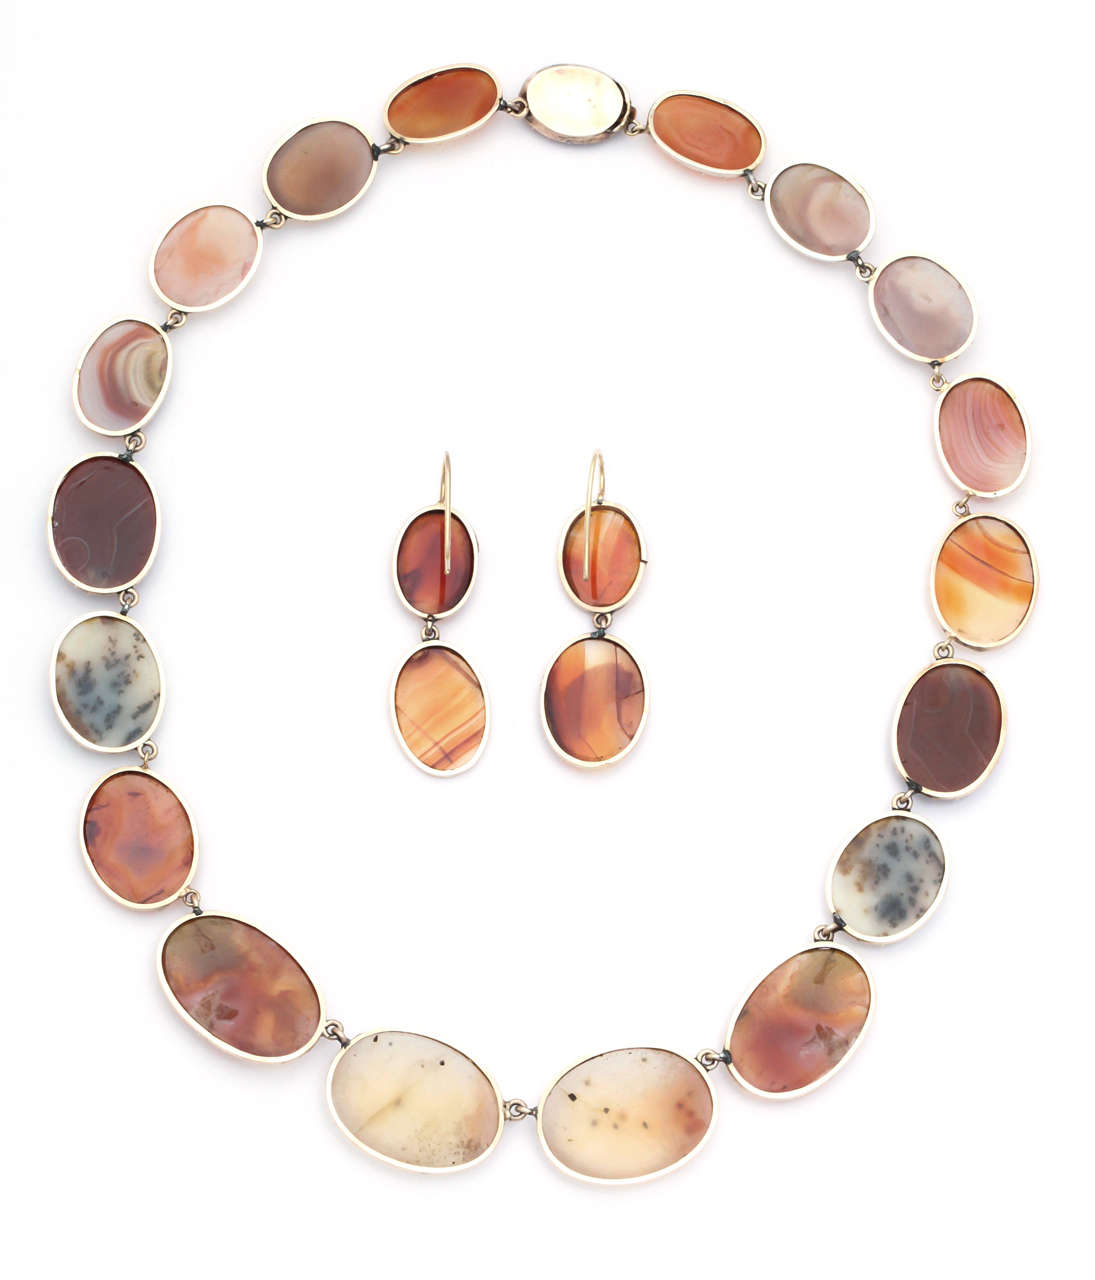 Sunrise-Sunset Color in a Victorian Natural Agate Necklace and Earrings For Sale 3